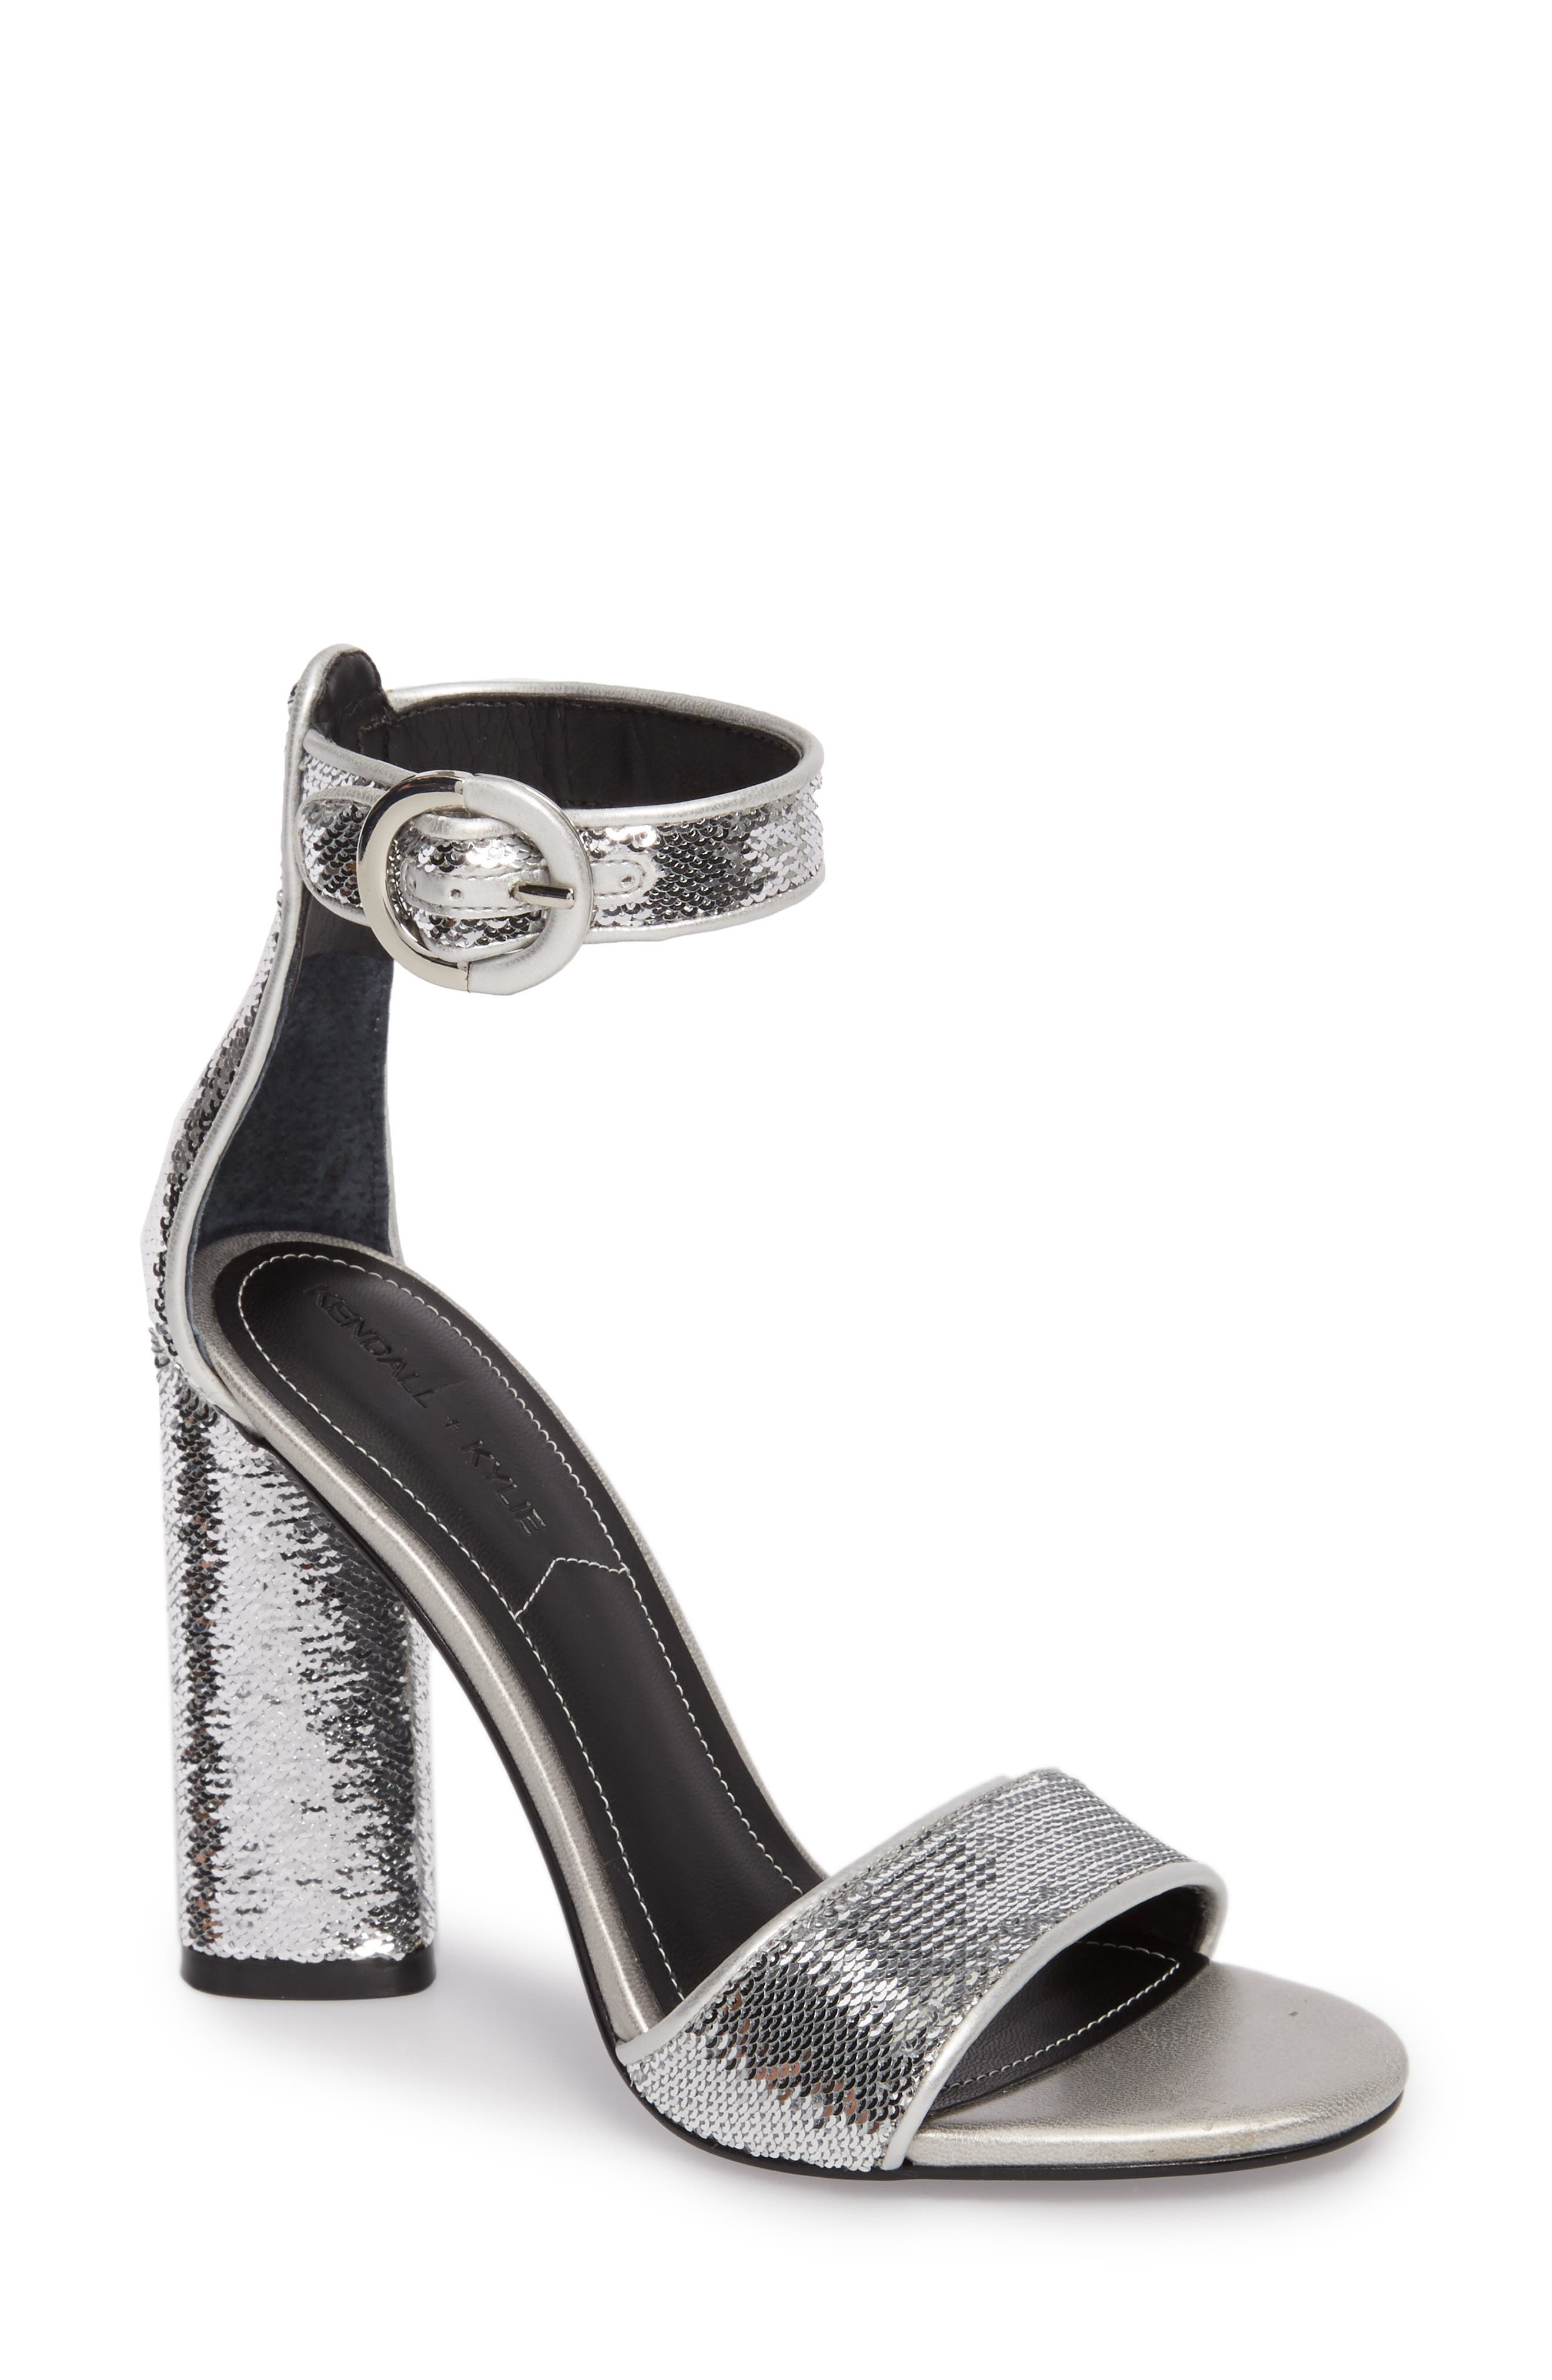 KENDALL + KYLIE Giselle Ankle Strap Sandal (Women)